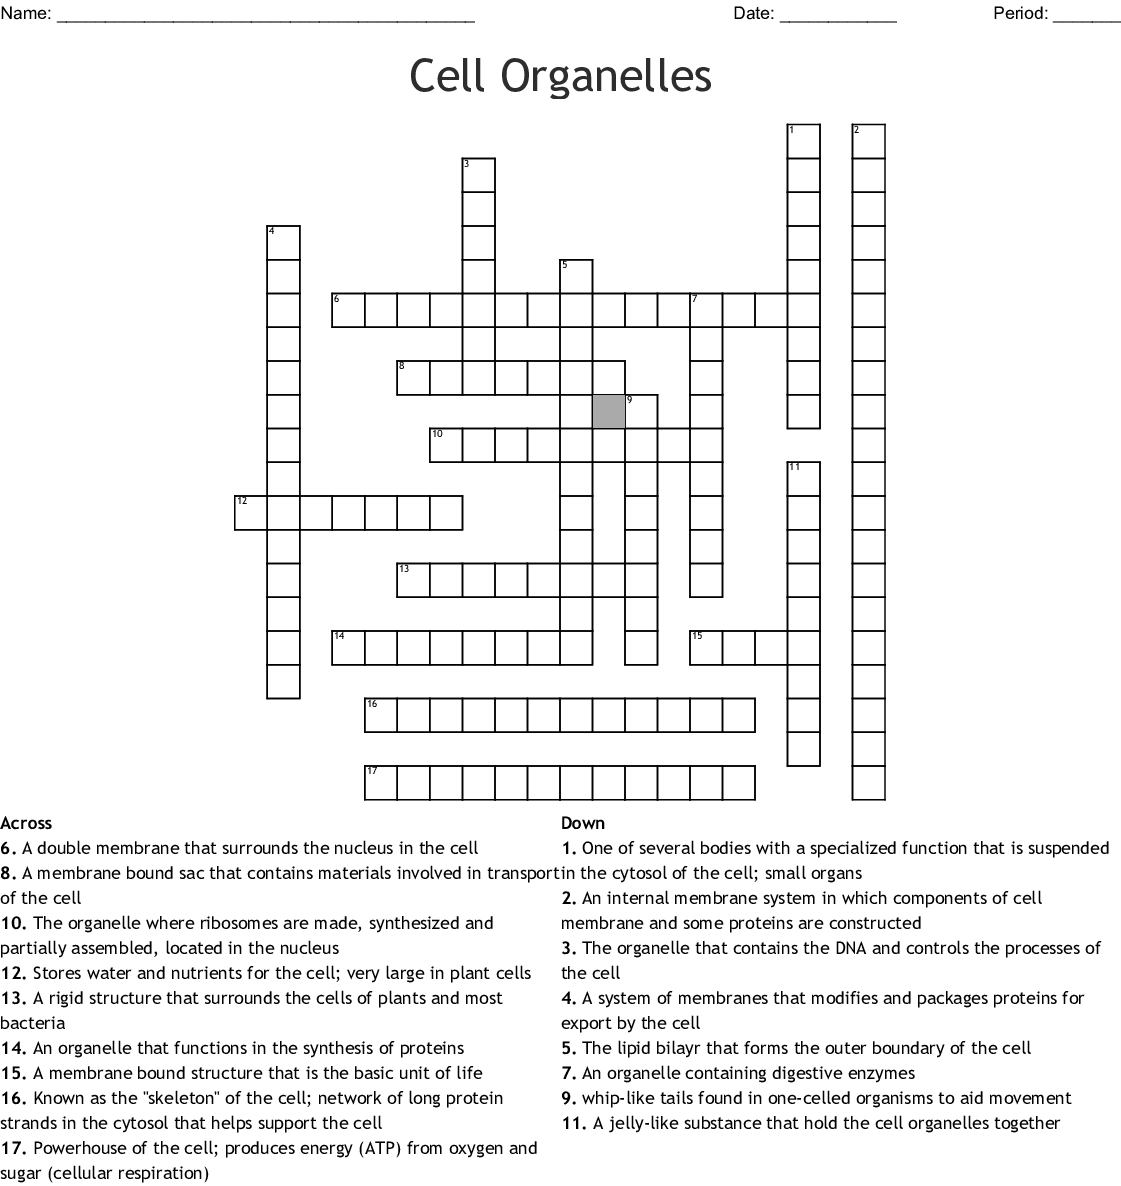 Cell Organelles Crossword